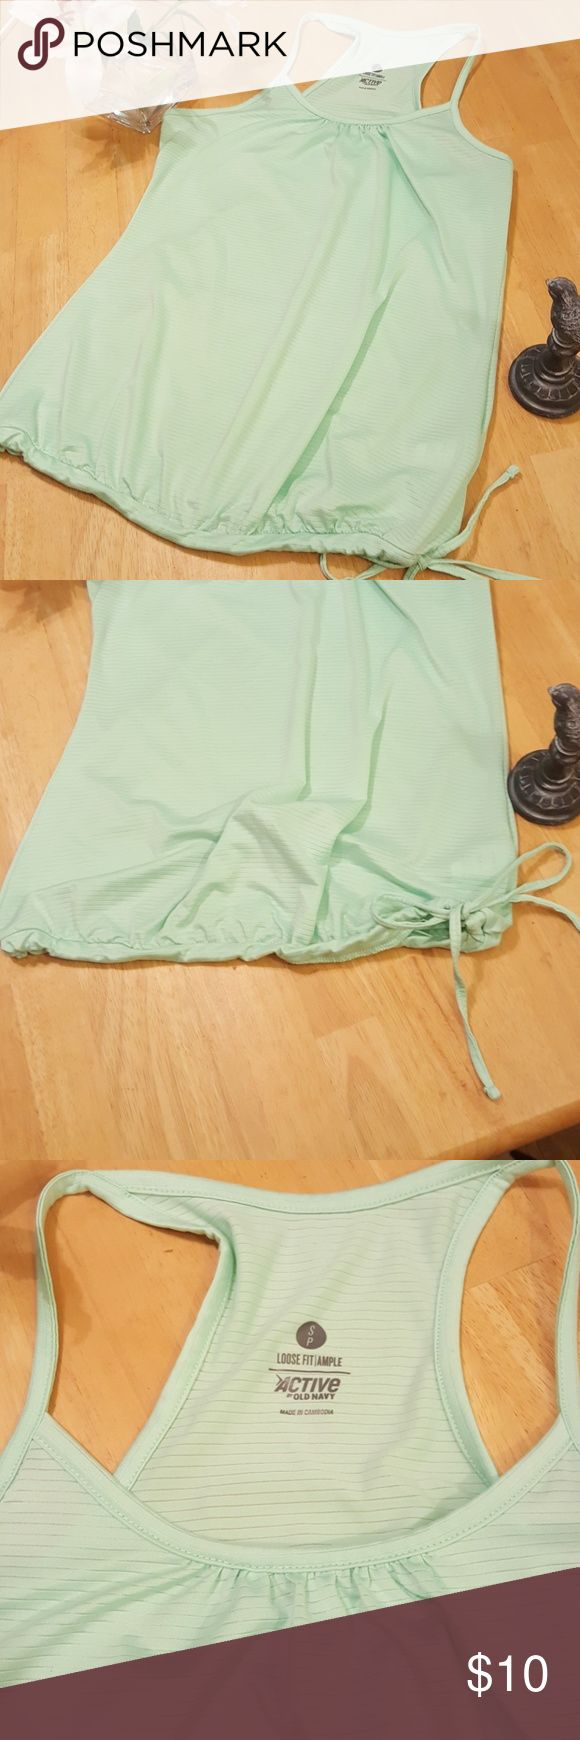 Active workout shirt Mint green active workout tang top with adjustable tie on bottom. very cute and comfortable only worn once! Old navy size S/P length 24 inches. Old Navy Tops